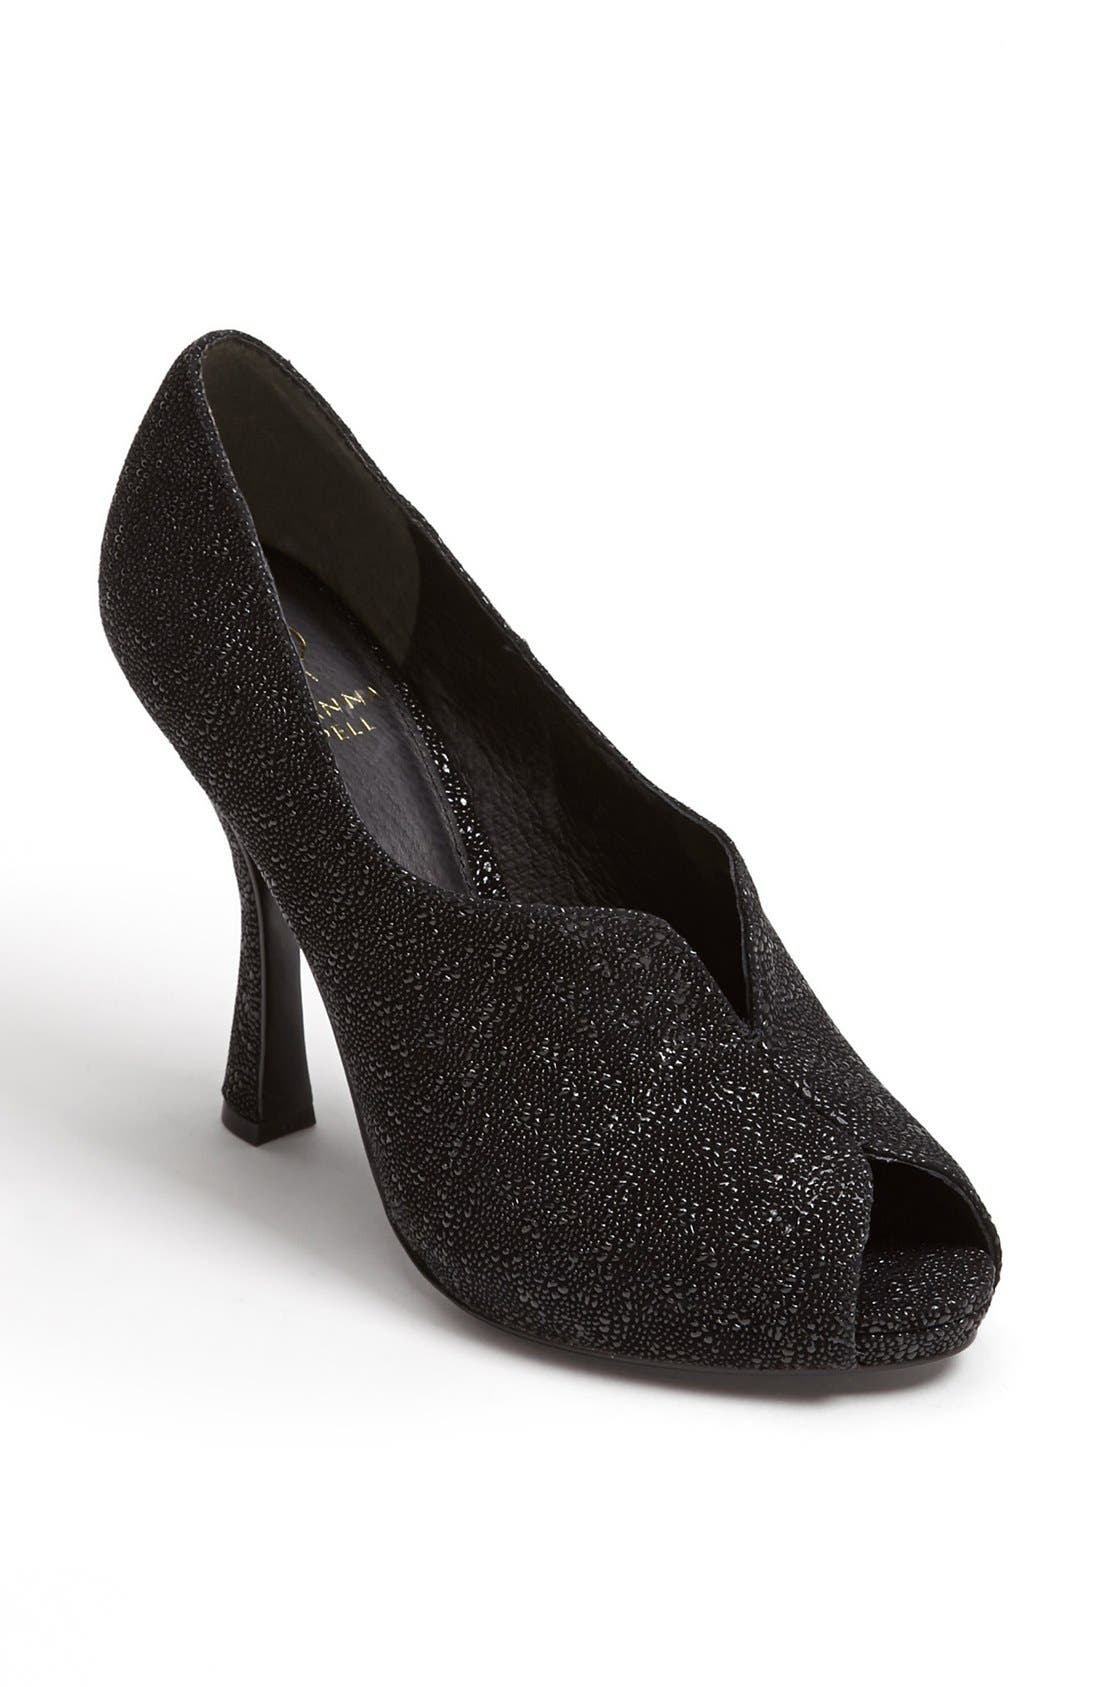 Main Image - Adrianna Papell 'Remy' Pump (Online Only)